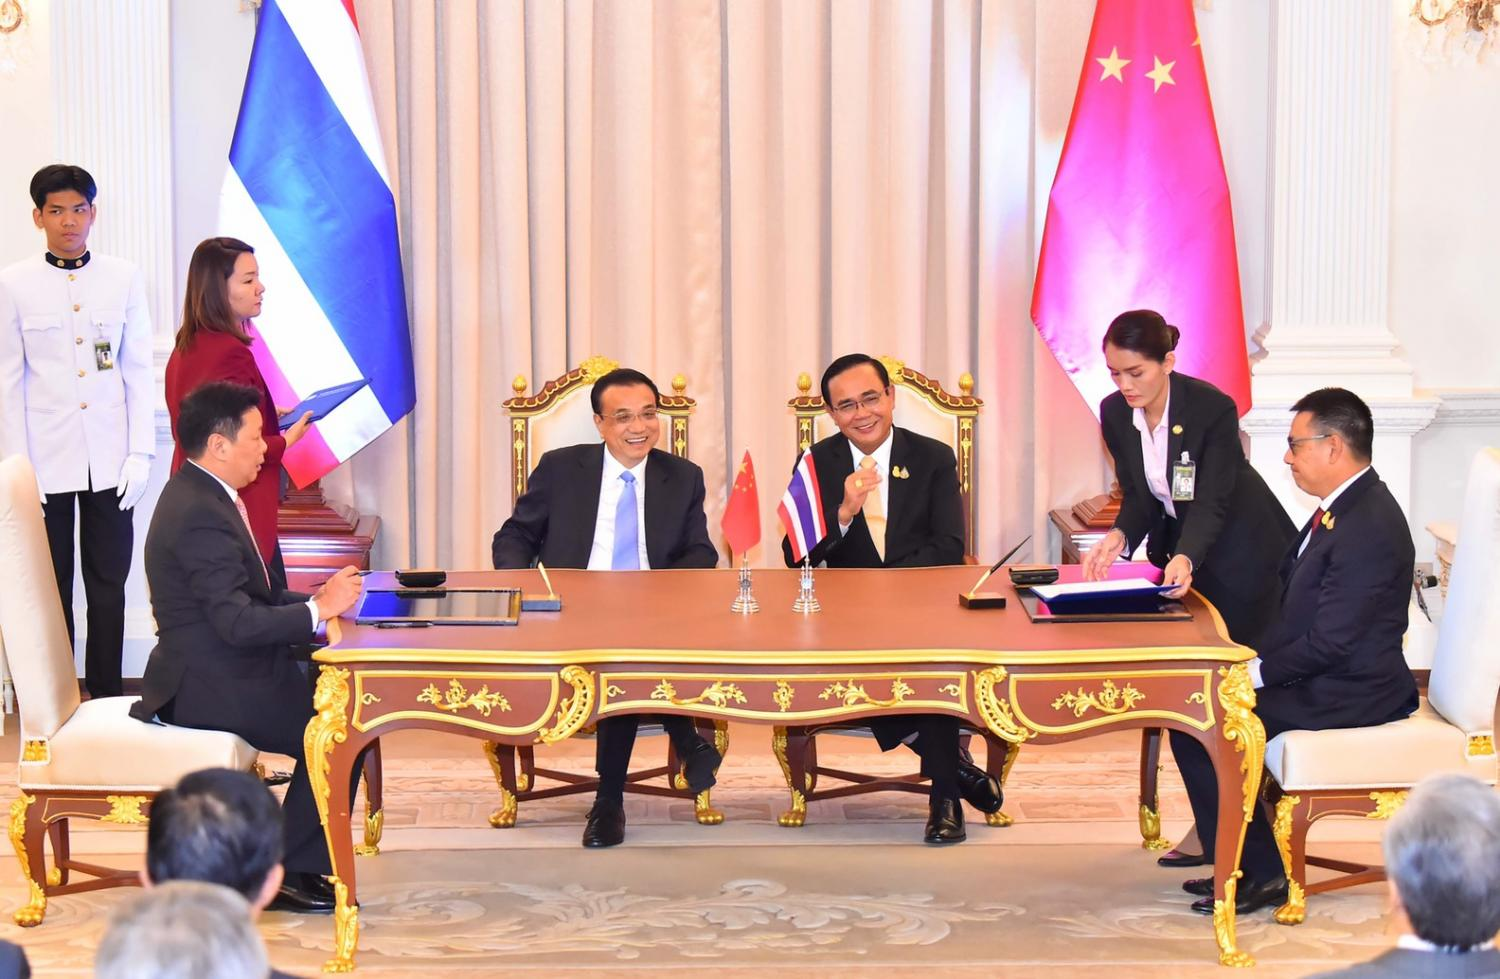 The leaders of SCG and the CAS signed an agreement on the CAS ICCB innovation hub. The signing was witnessed by Prime Minister Prayut Chan-o-cha and Chinese Premier Li Keqiang.